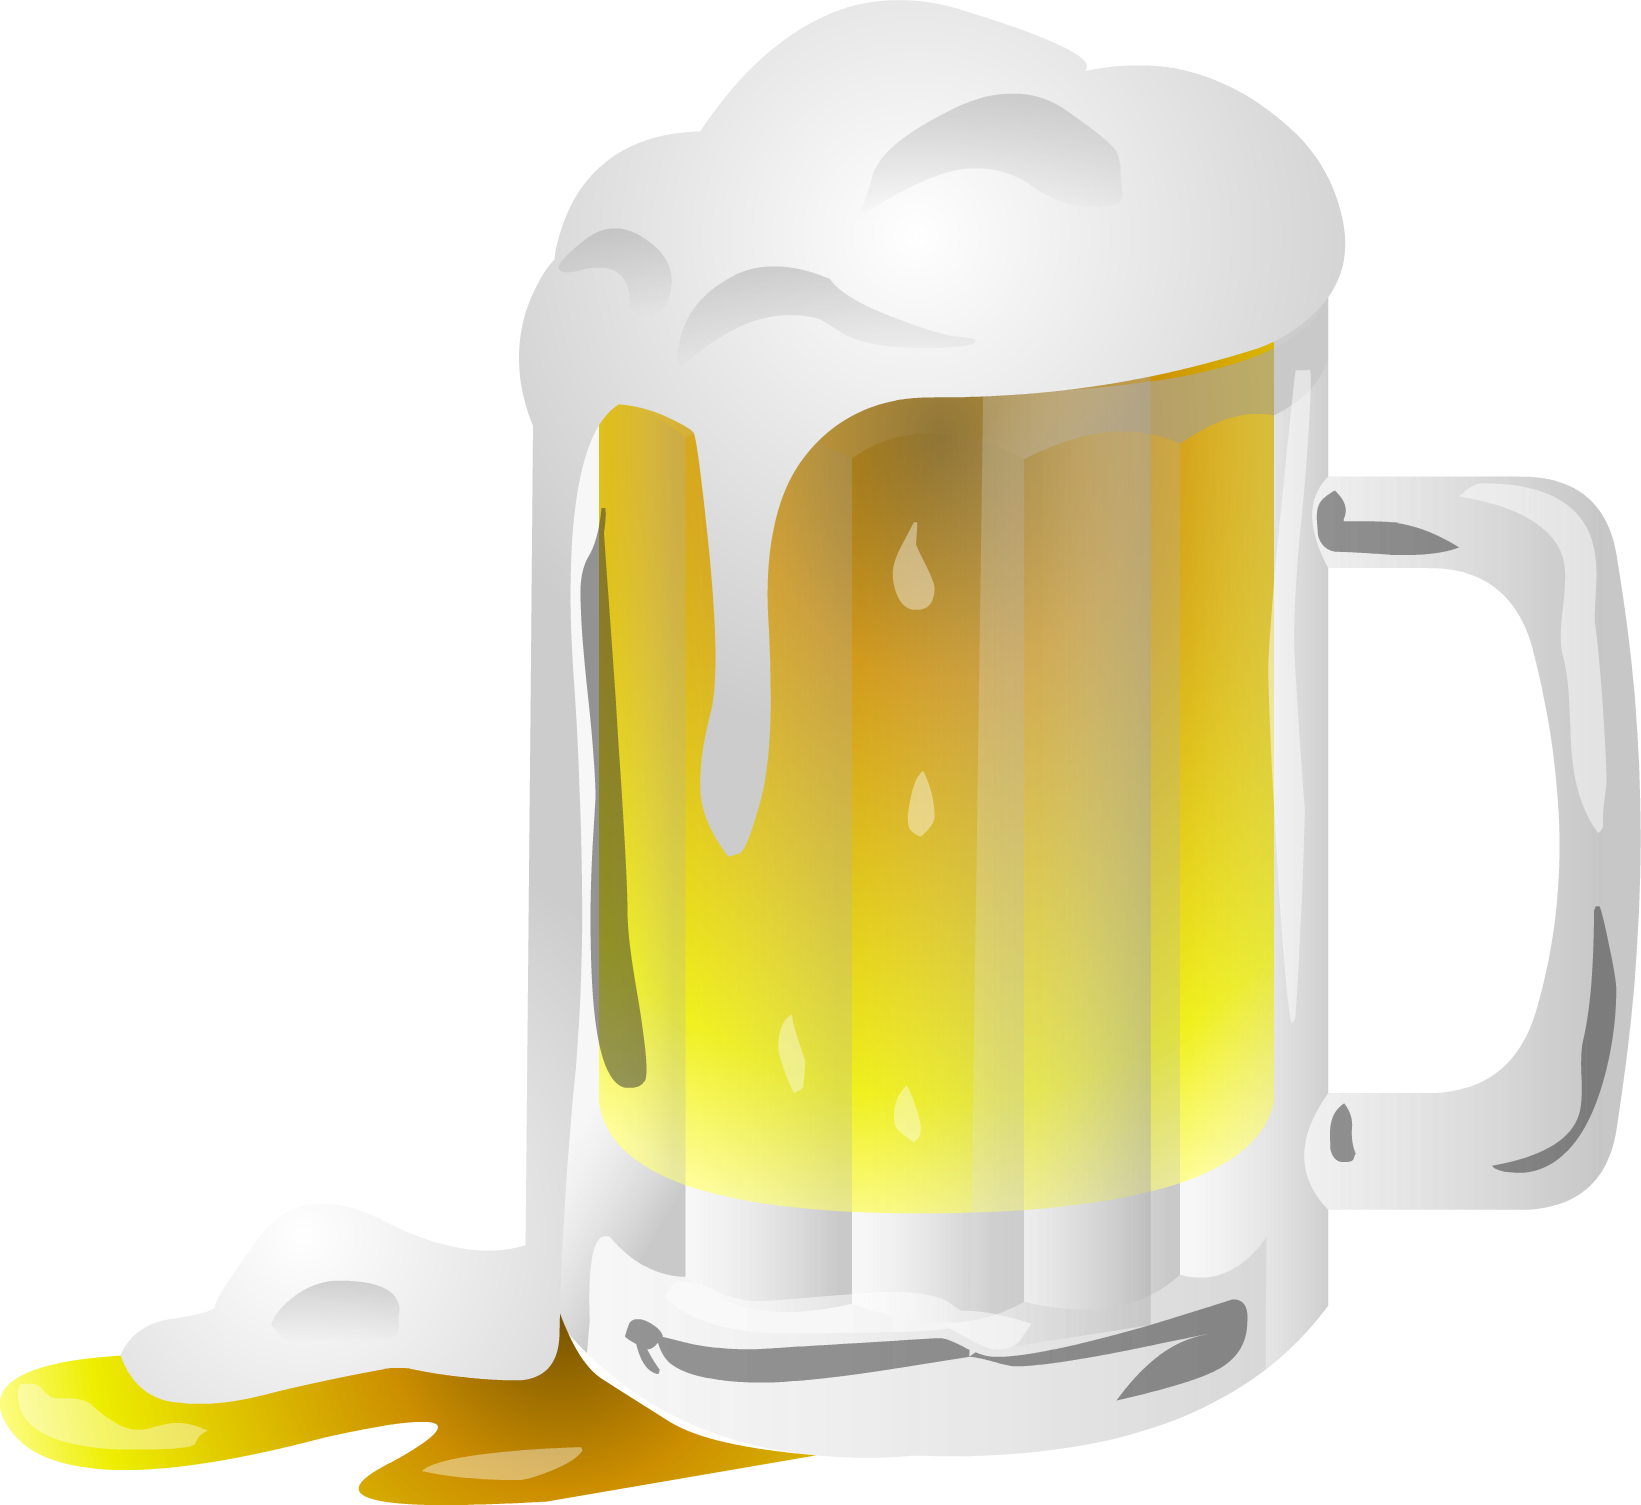 Beer mug clip art free vector in open office drawing svg.